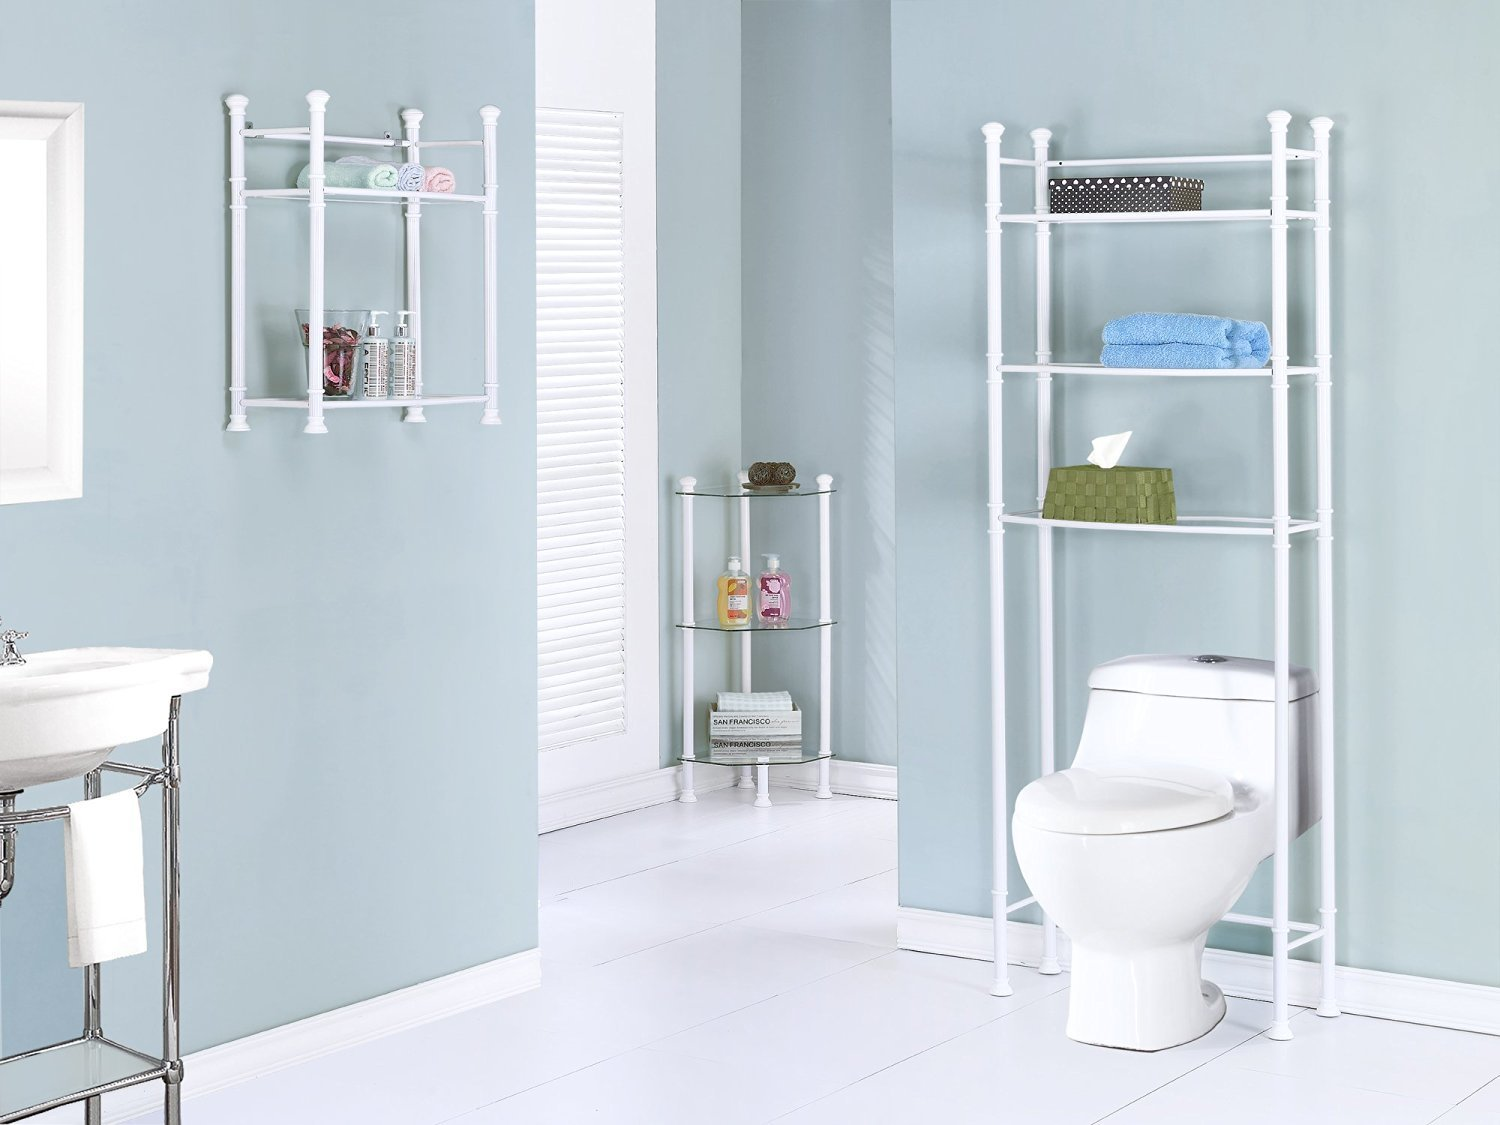 Review of Glass-based Bathroom Corner Shelves